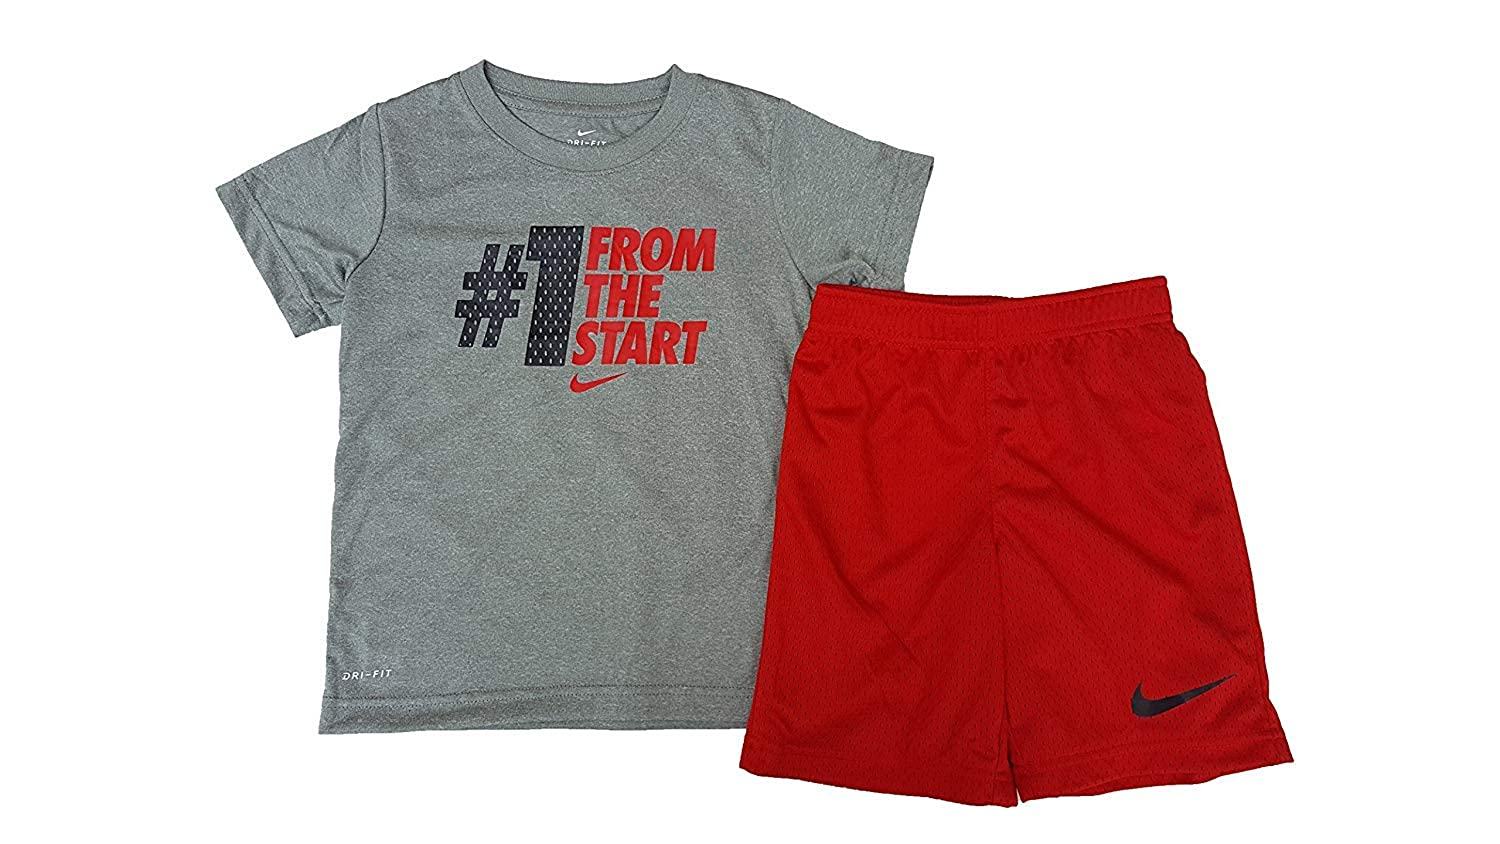 University Red 6 5-6 Years; 110-116 sm Nike Boys` Graphic Print T-Shirt /& Shorts 2 Piece Set U10 // Grey//Black